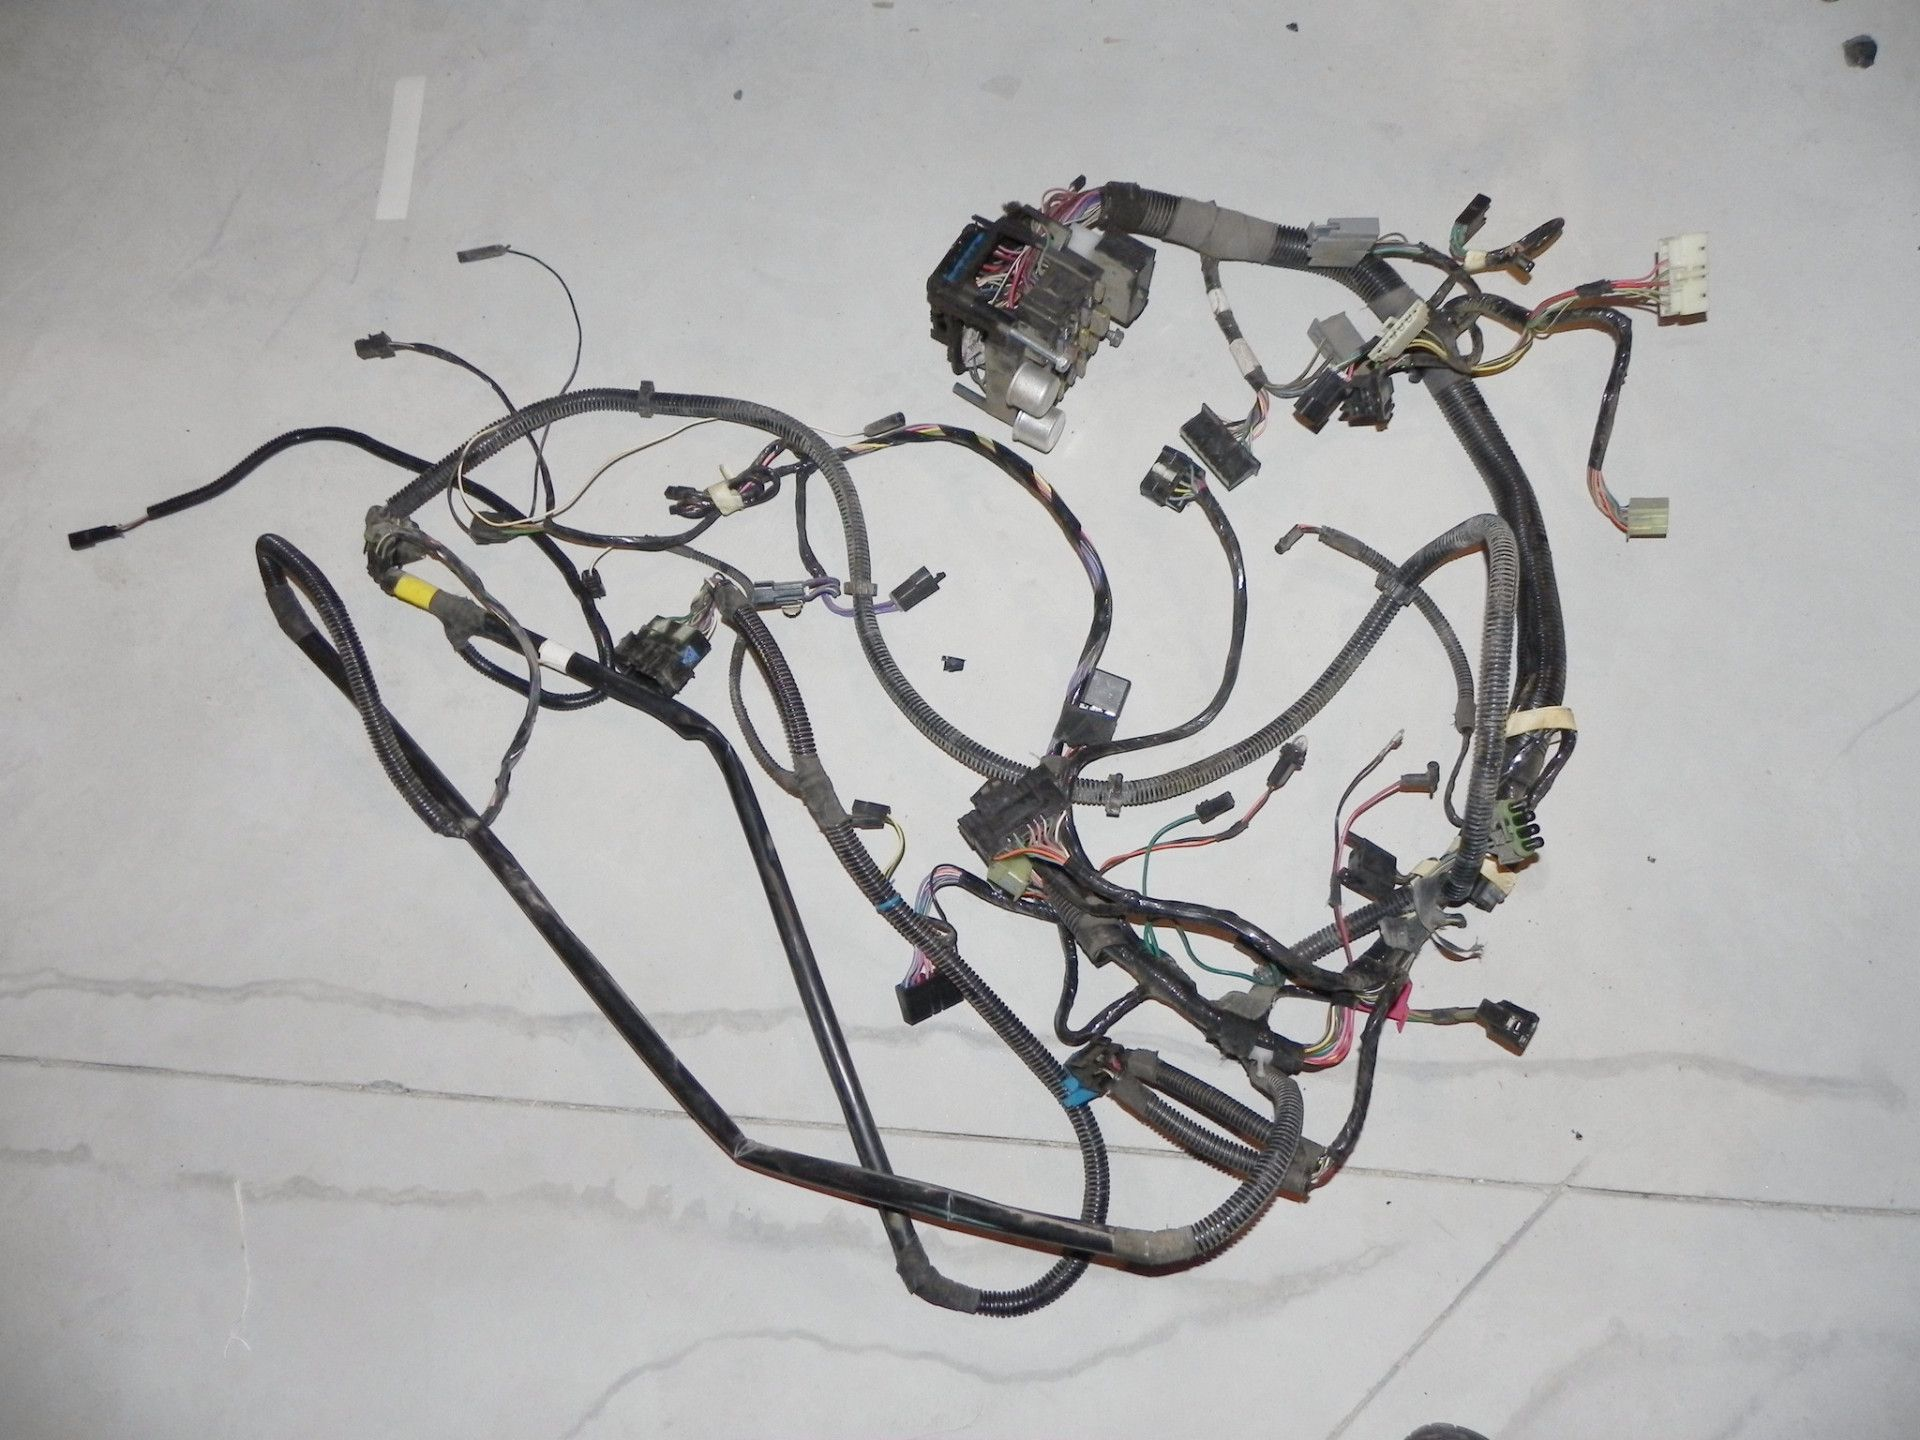 1ac84ff66da6ba86e03de6b4e4edac74 jeep wrangler yj interior under dash wiring harness 92 95 jeep 1987 jeep wrangler wiring harness at virtualis.co